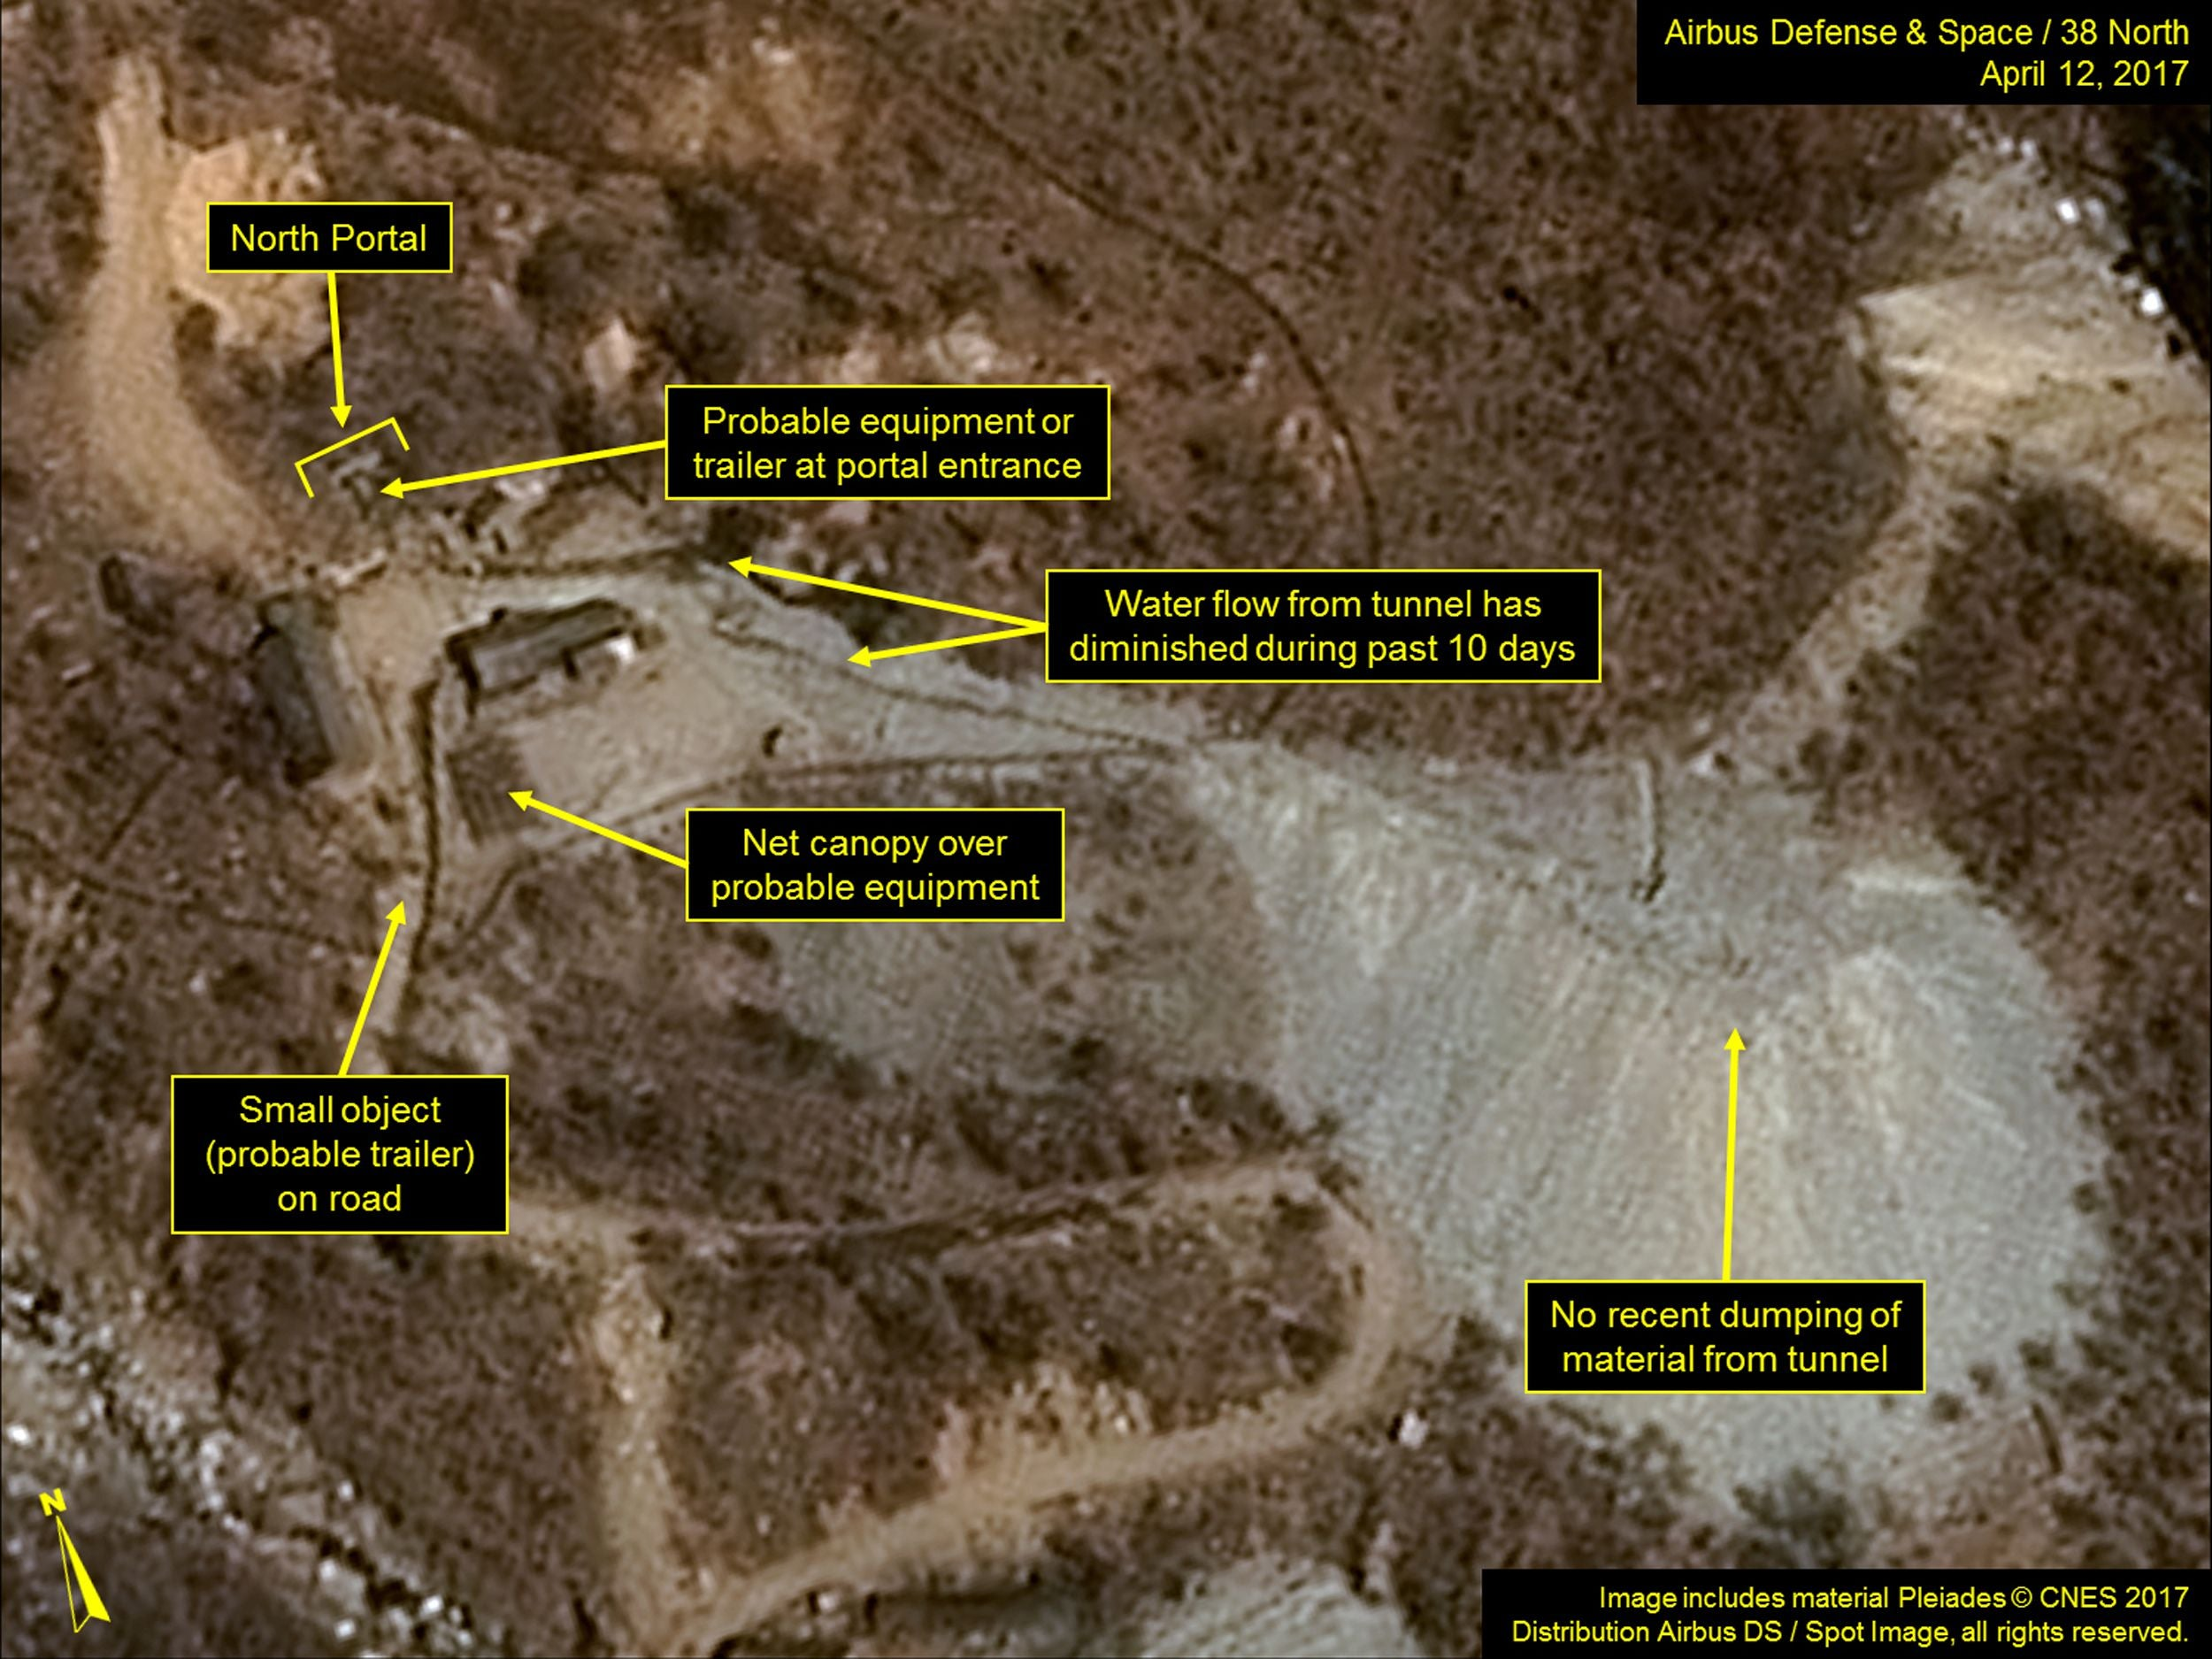 North Korea tunnel collapse could cause serious radiation leak